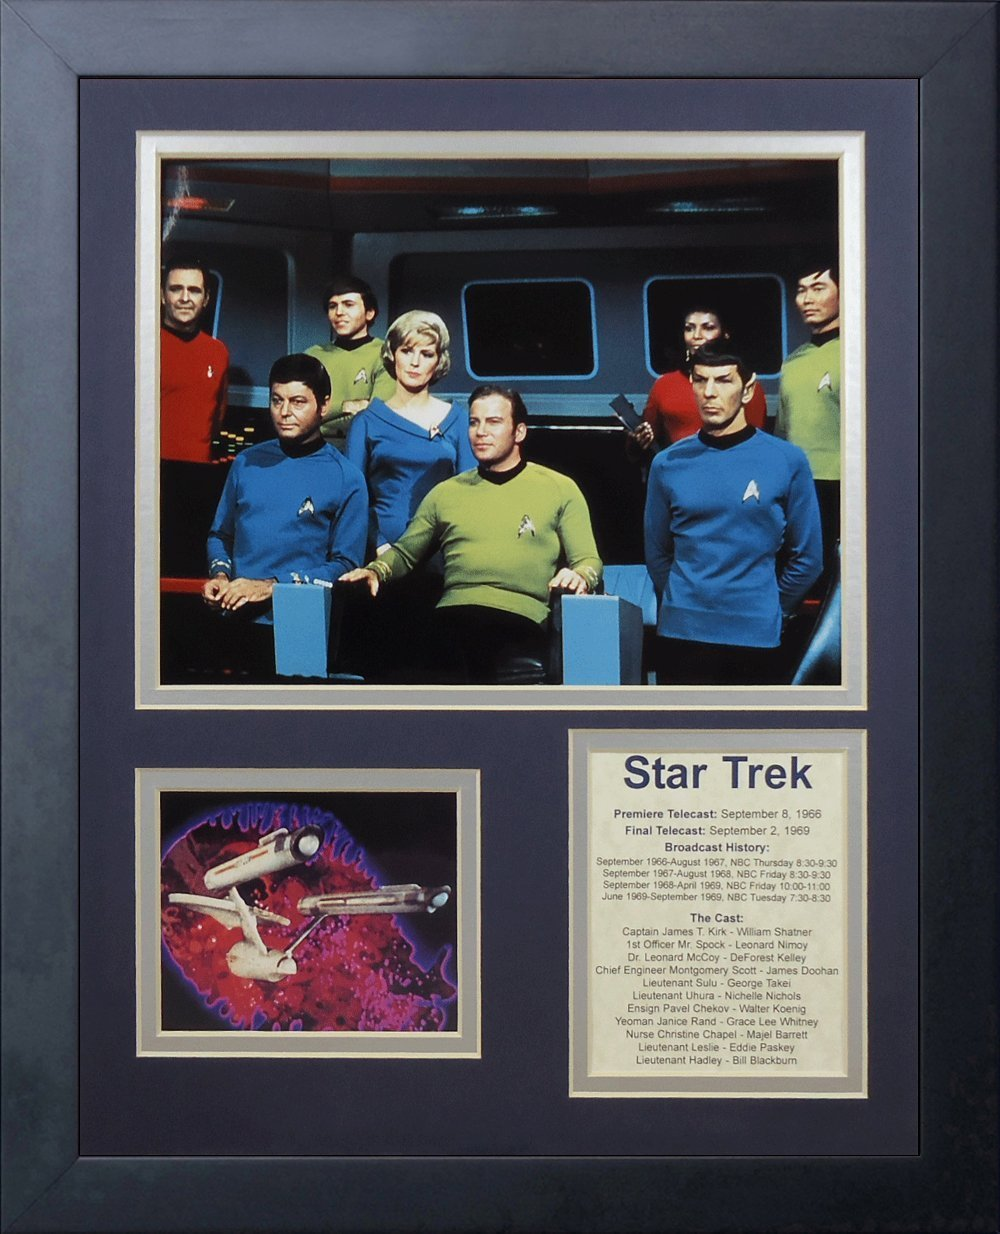 Legends Never Die Star Trek Bridge Crew Framed Photo Collage, 11 by 14-Inch 16005U